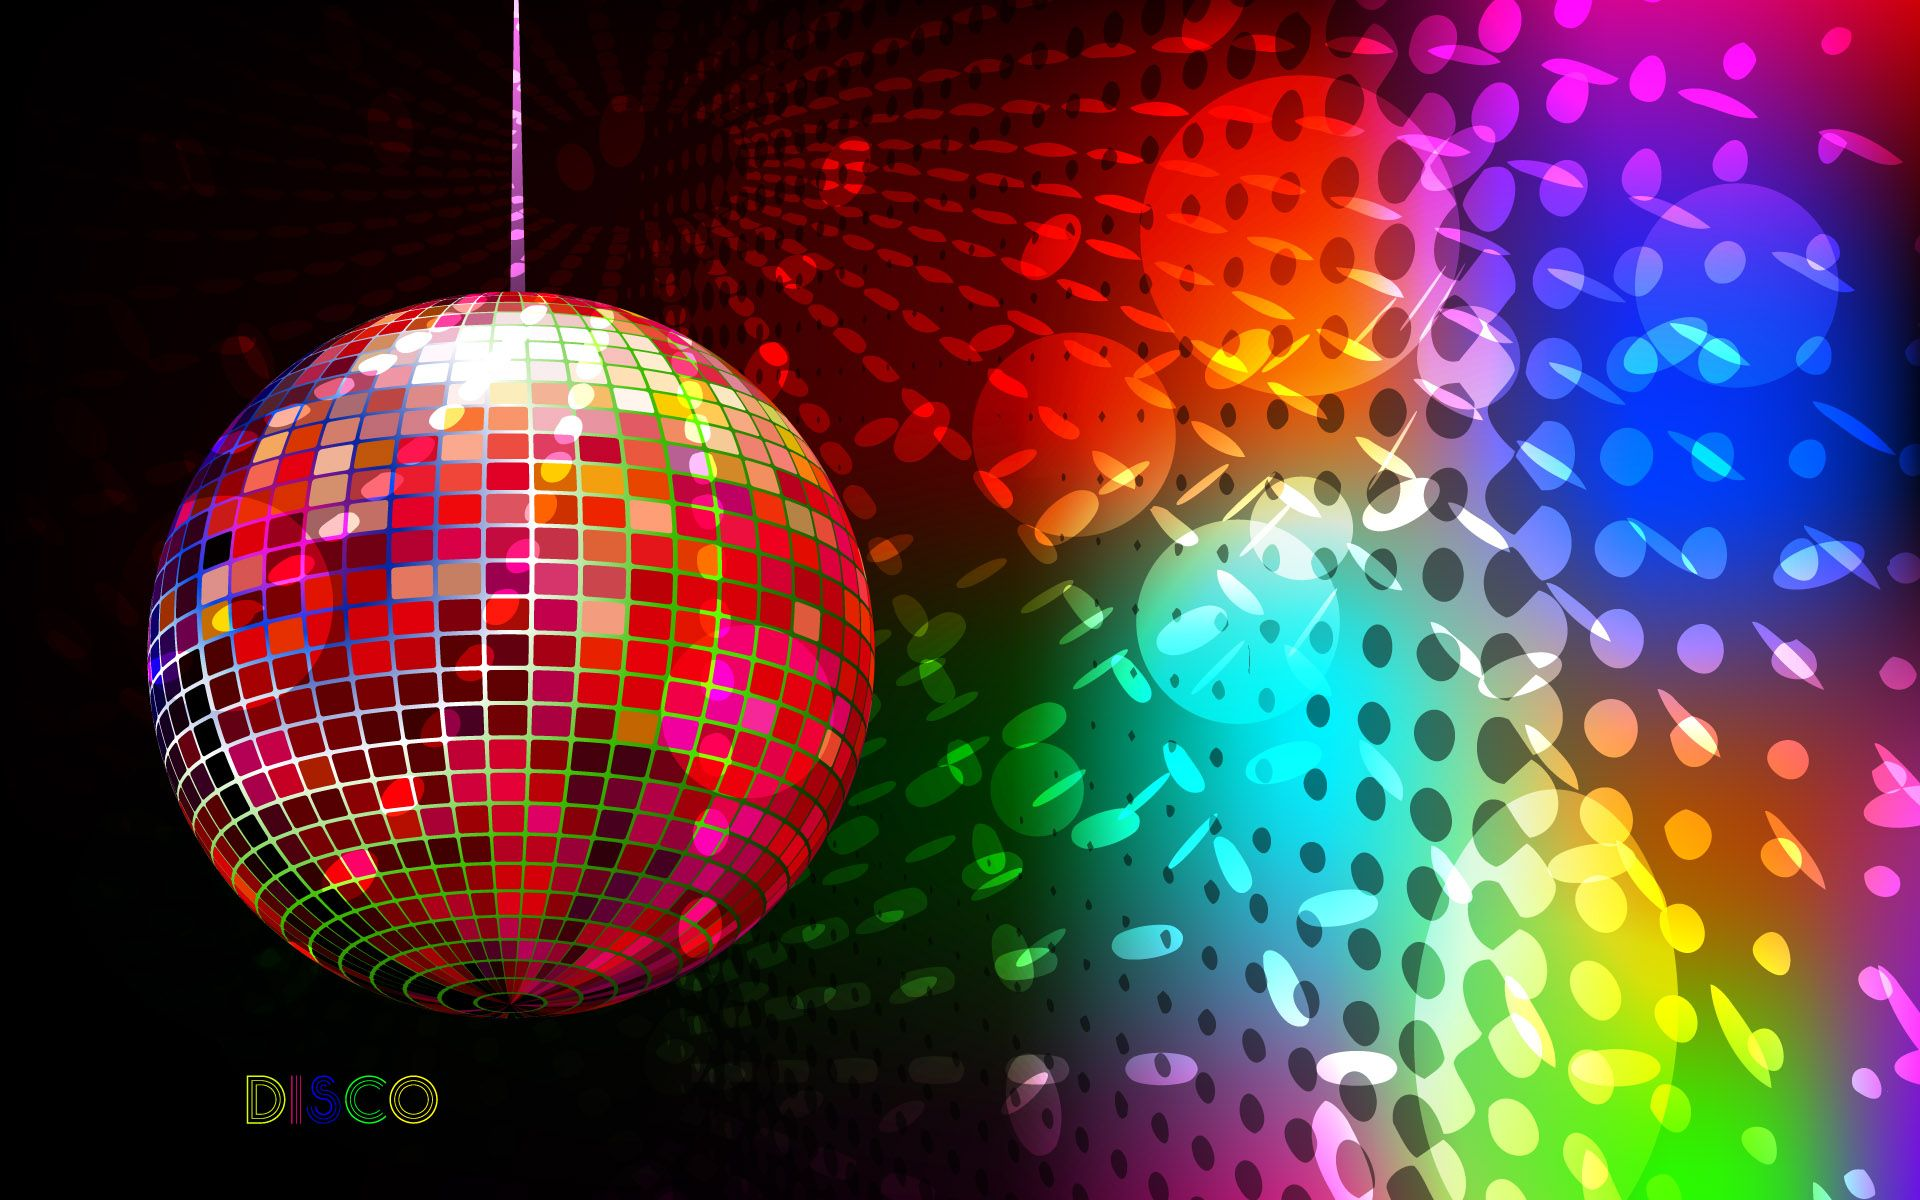 Disco Full HD Wallpaper And Background Image